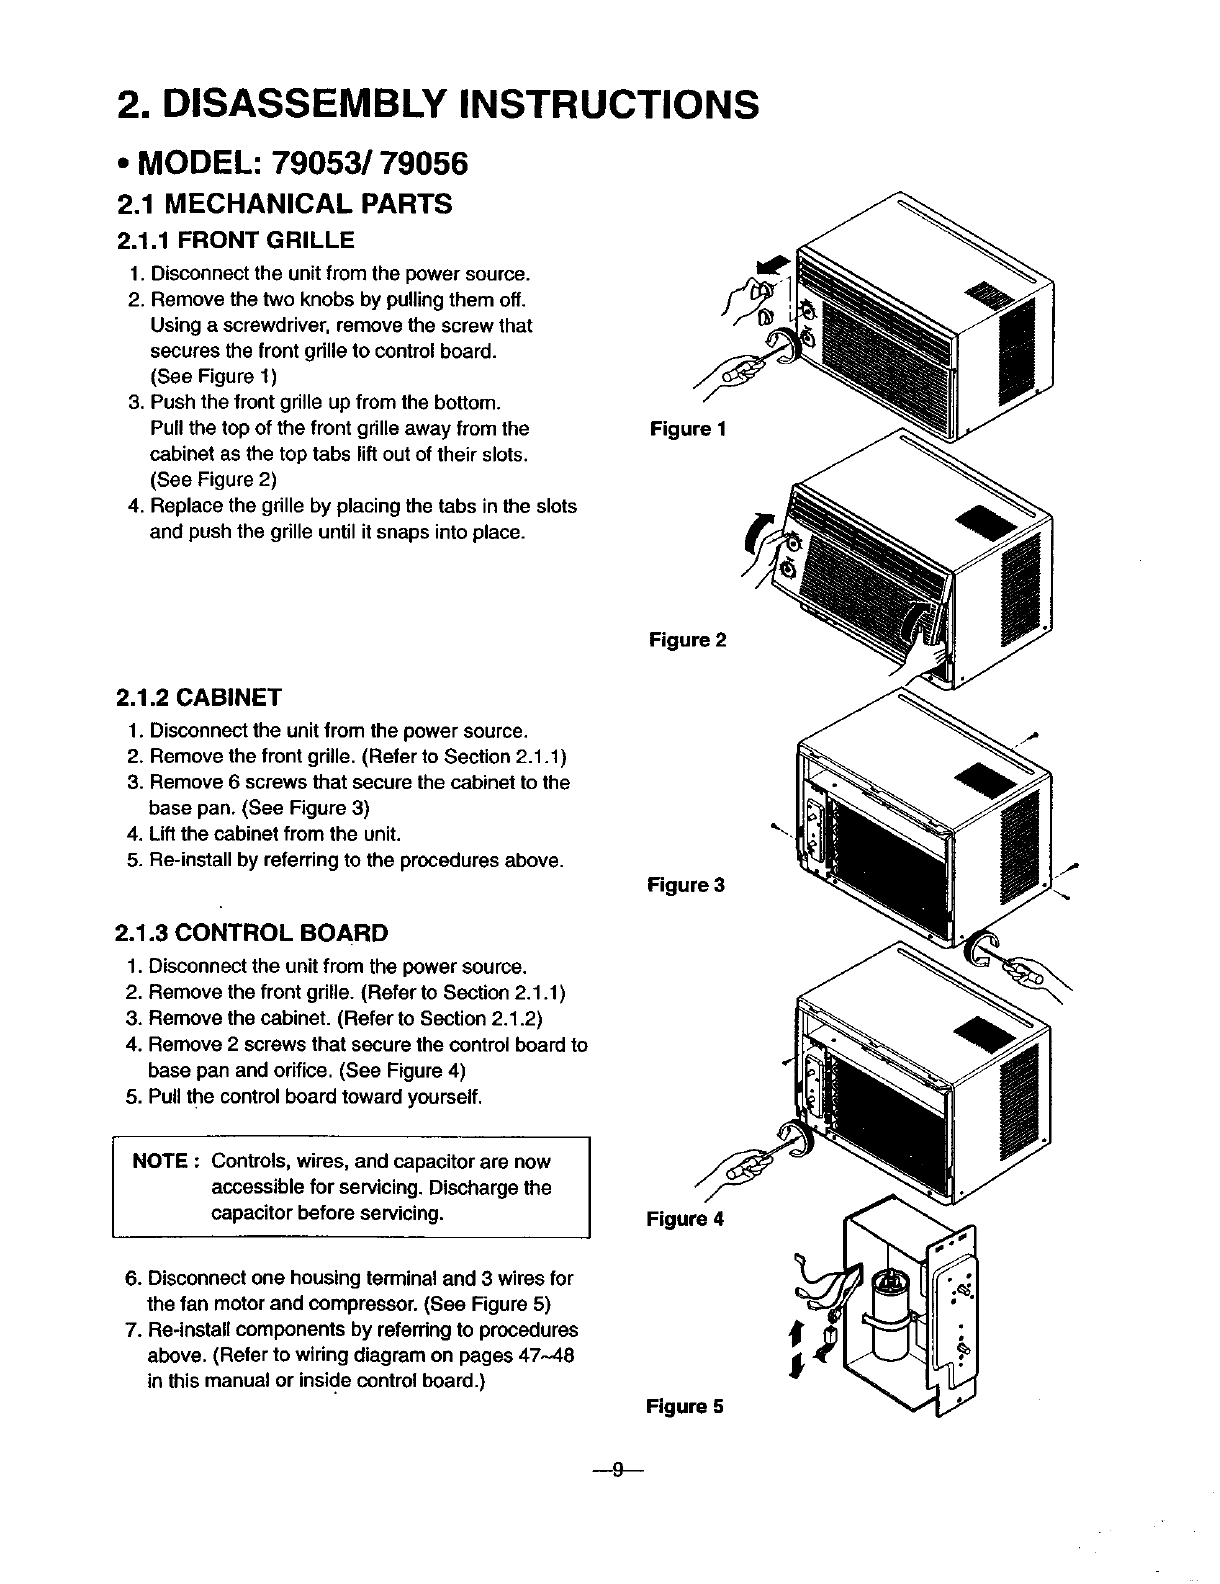 Kenmore 58079053890 User Manual Room Air Conditioner Manuals And Box Fan Wiring Diagram Disassembly Instructions